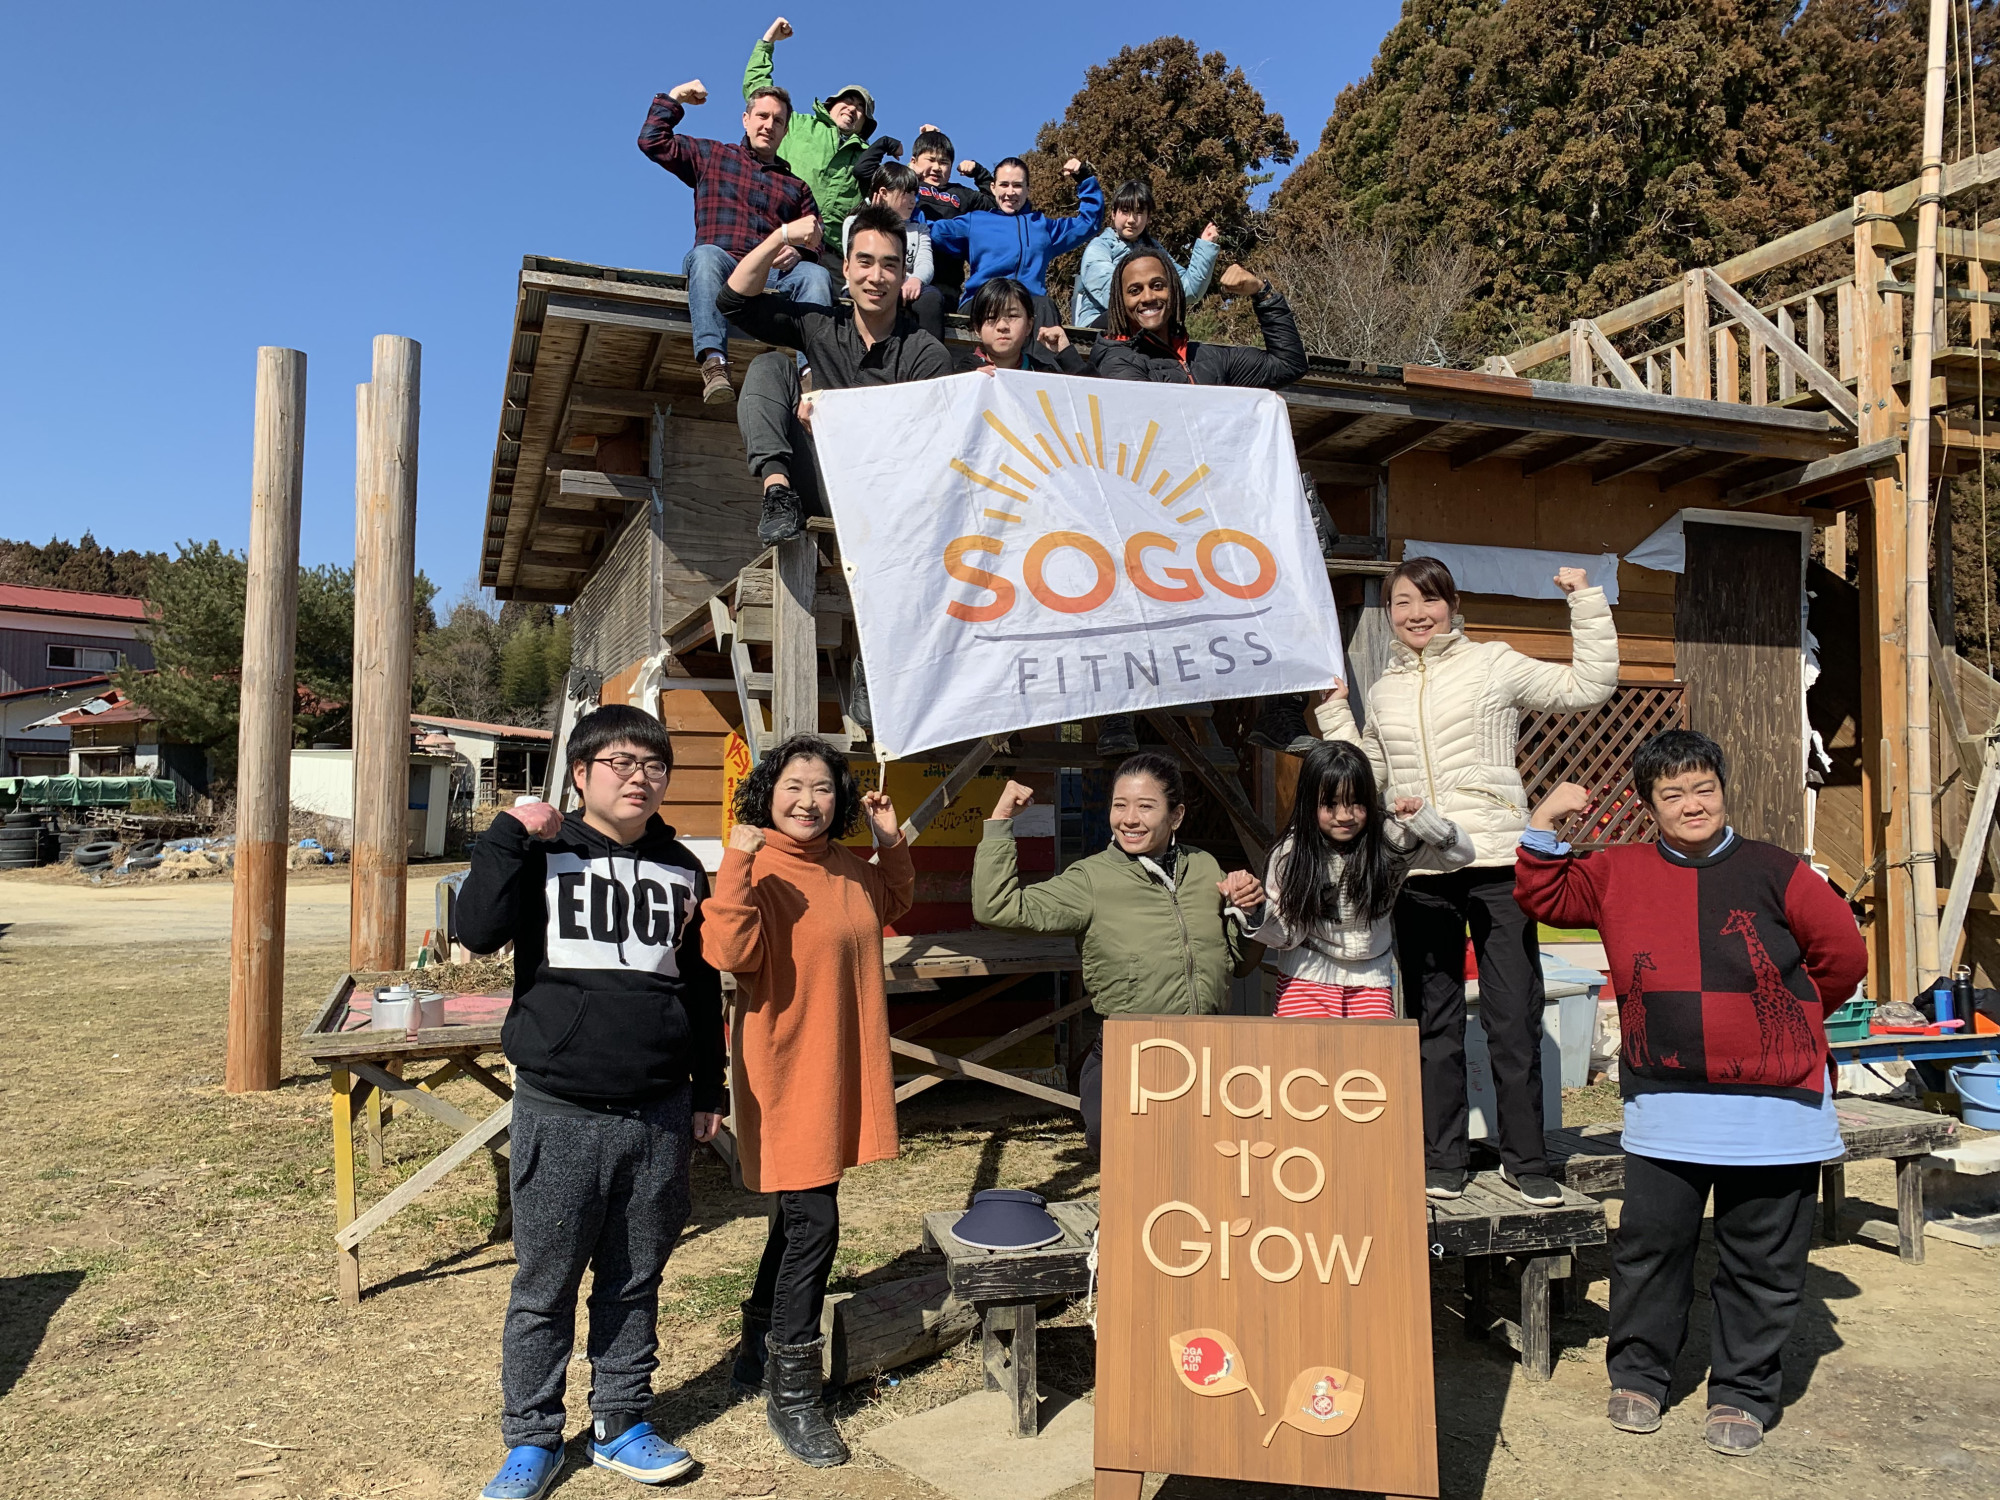 Continuing support: Place to Grow is helping to make a difference in Tohoku. | COURTESY OF PLACE TO GROW